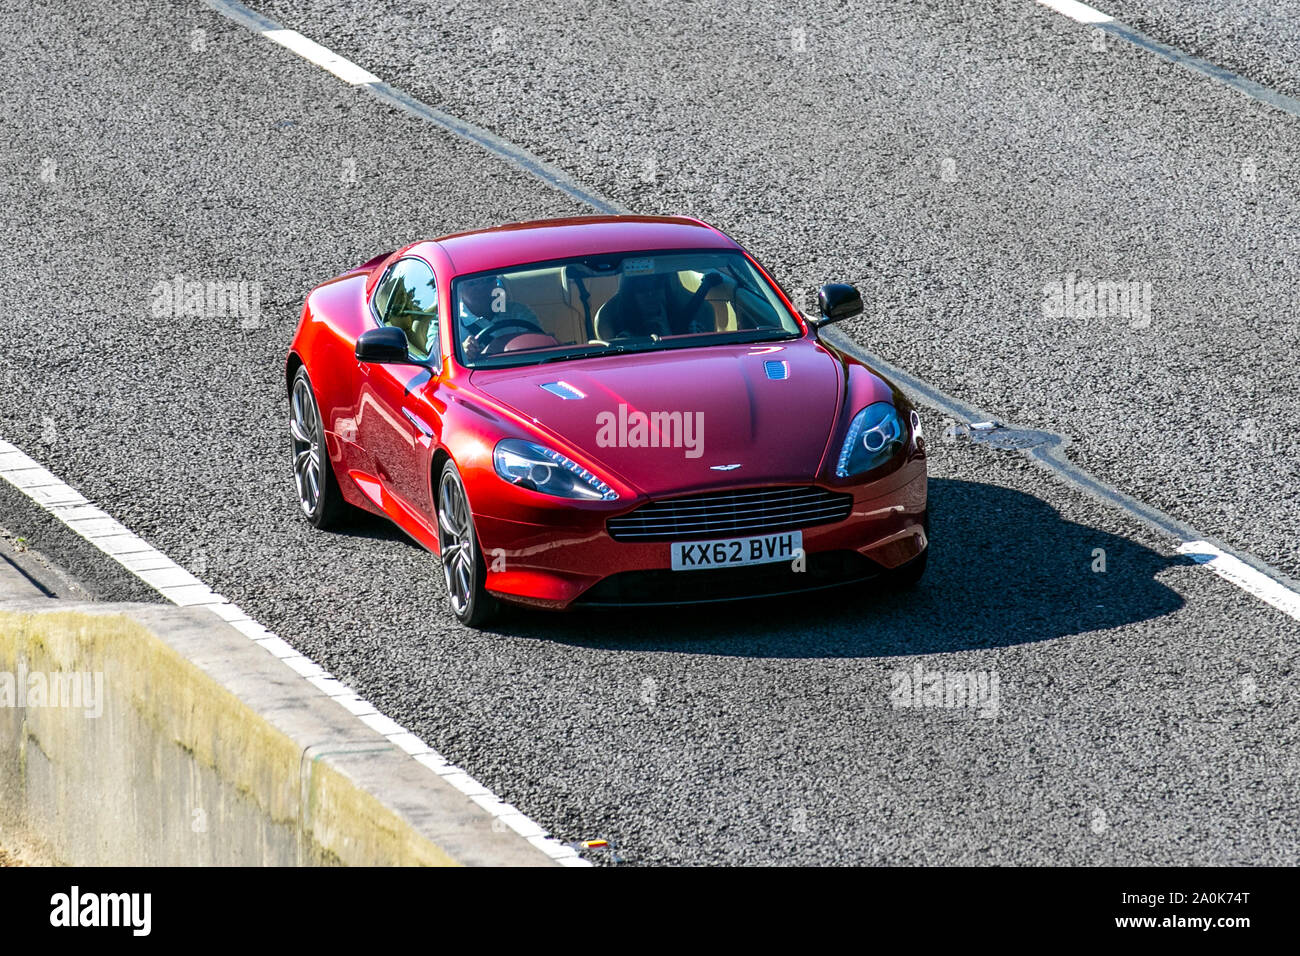 2012 Red Aston Martin Db9 Uk Vehicular Traffic Transport Modern Saloon Cars South Bound On The 3 Lane M6 Motorway Highway Stock Photo Alamy